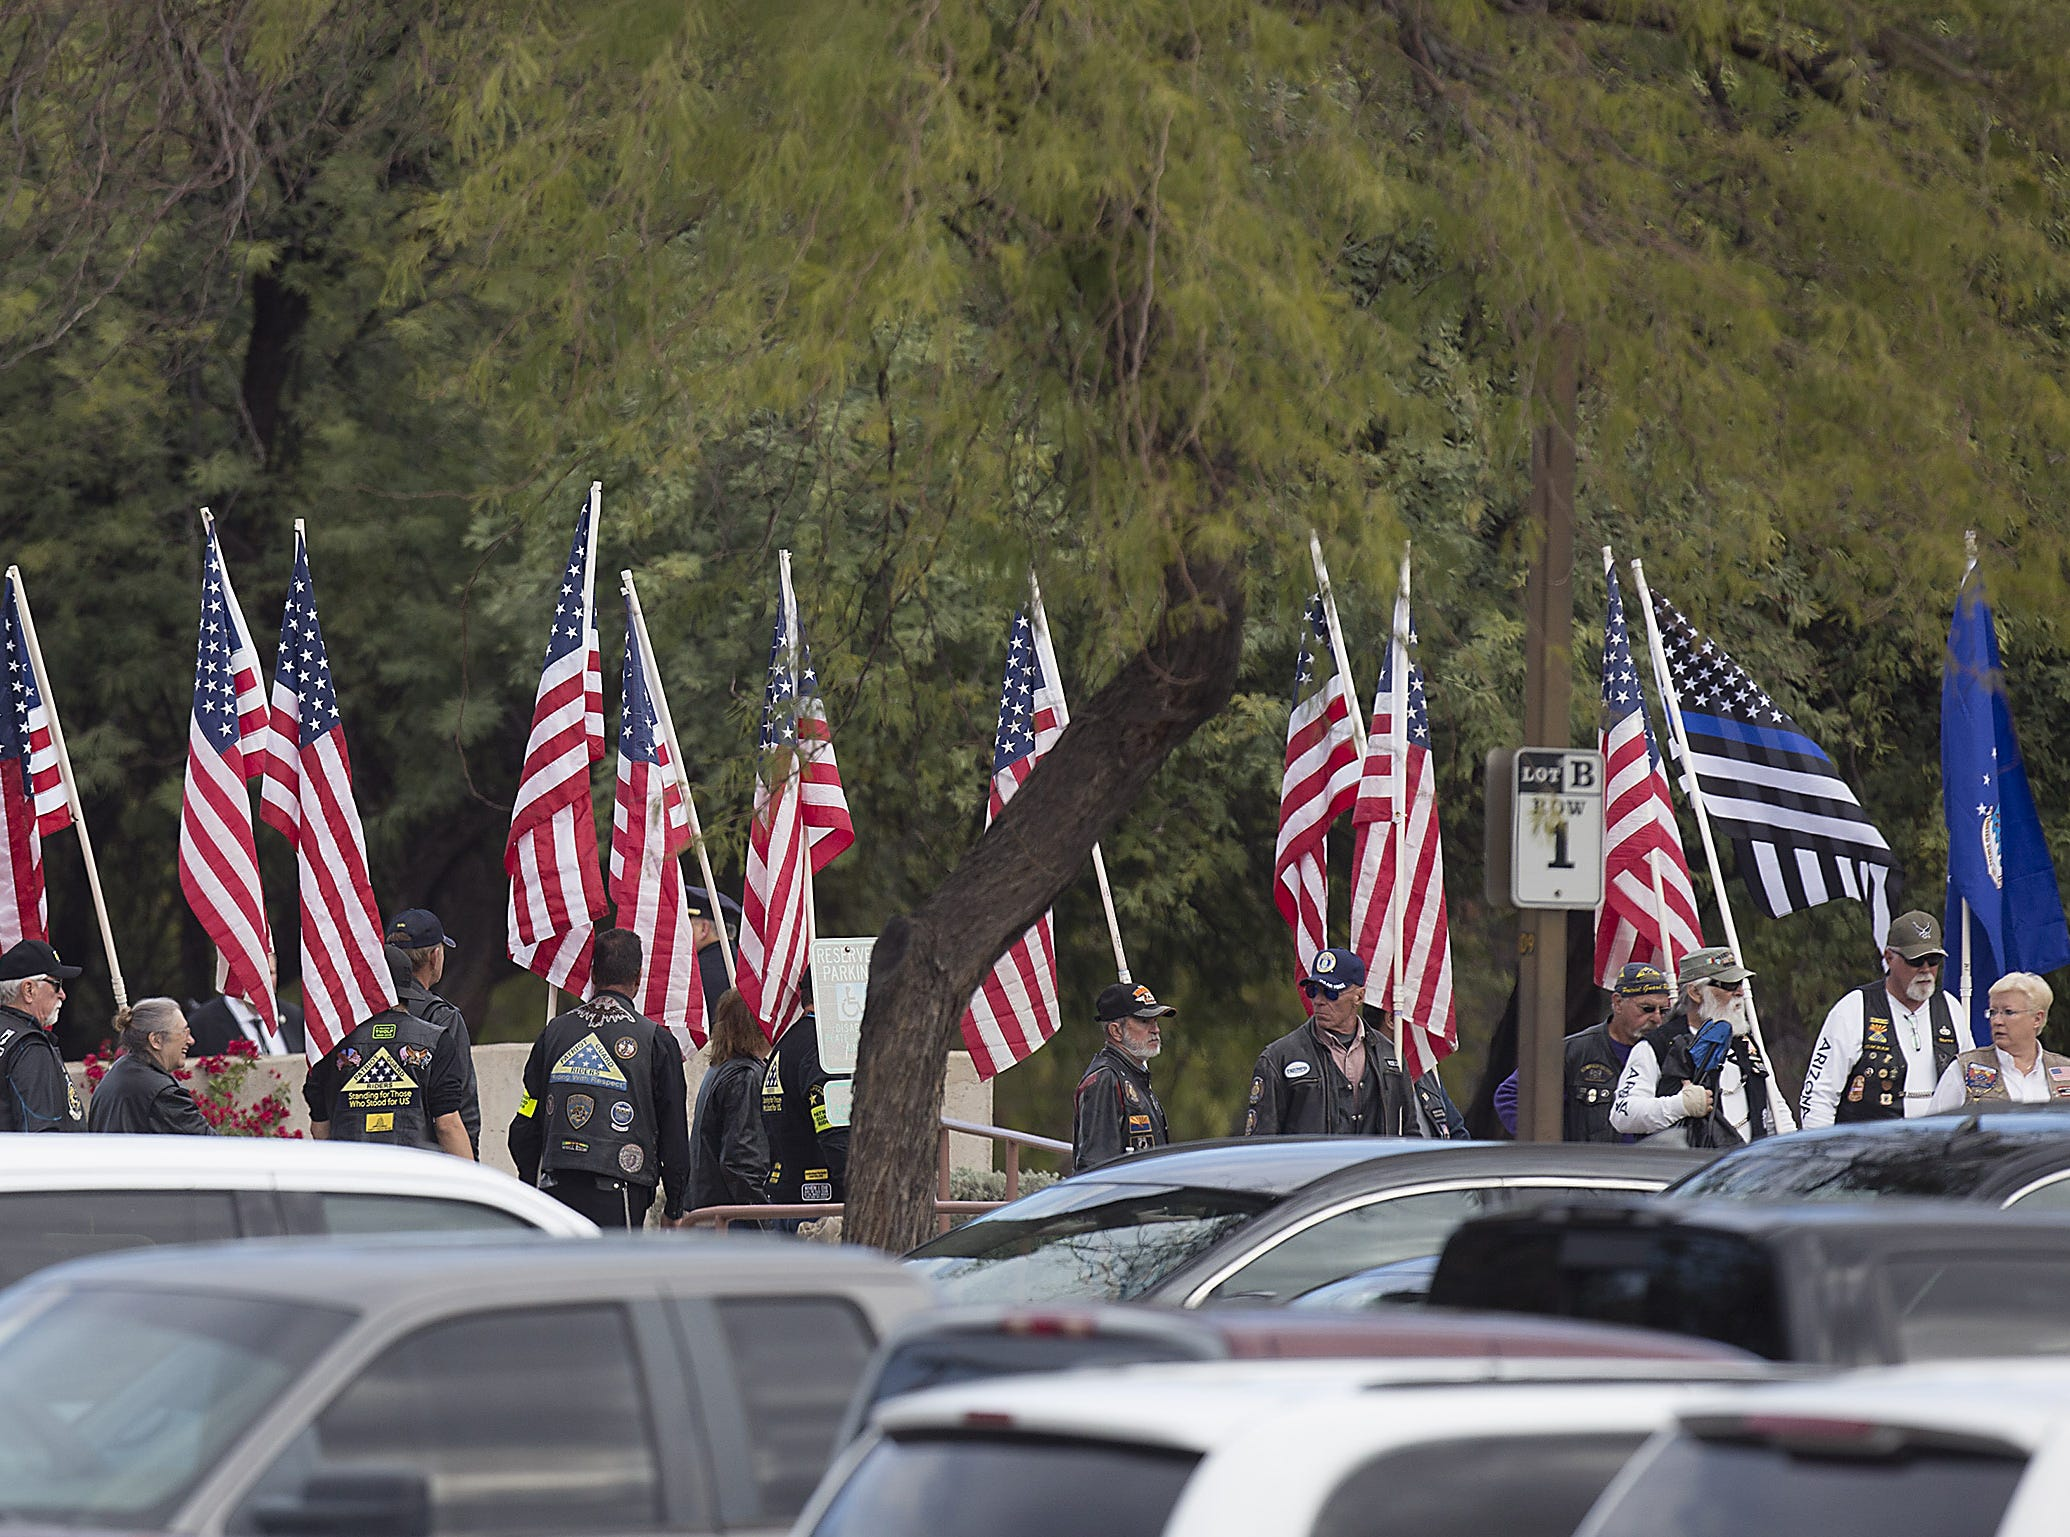 Tucson Police Department officers take part in a procession Dec. 7, 2018, to honor fallen U.S. Marshal Deputy Chase White, who was shot and killed while on duty.